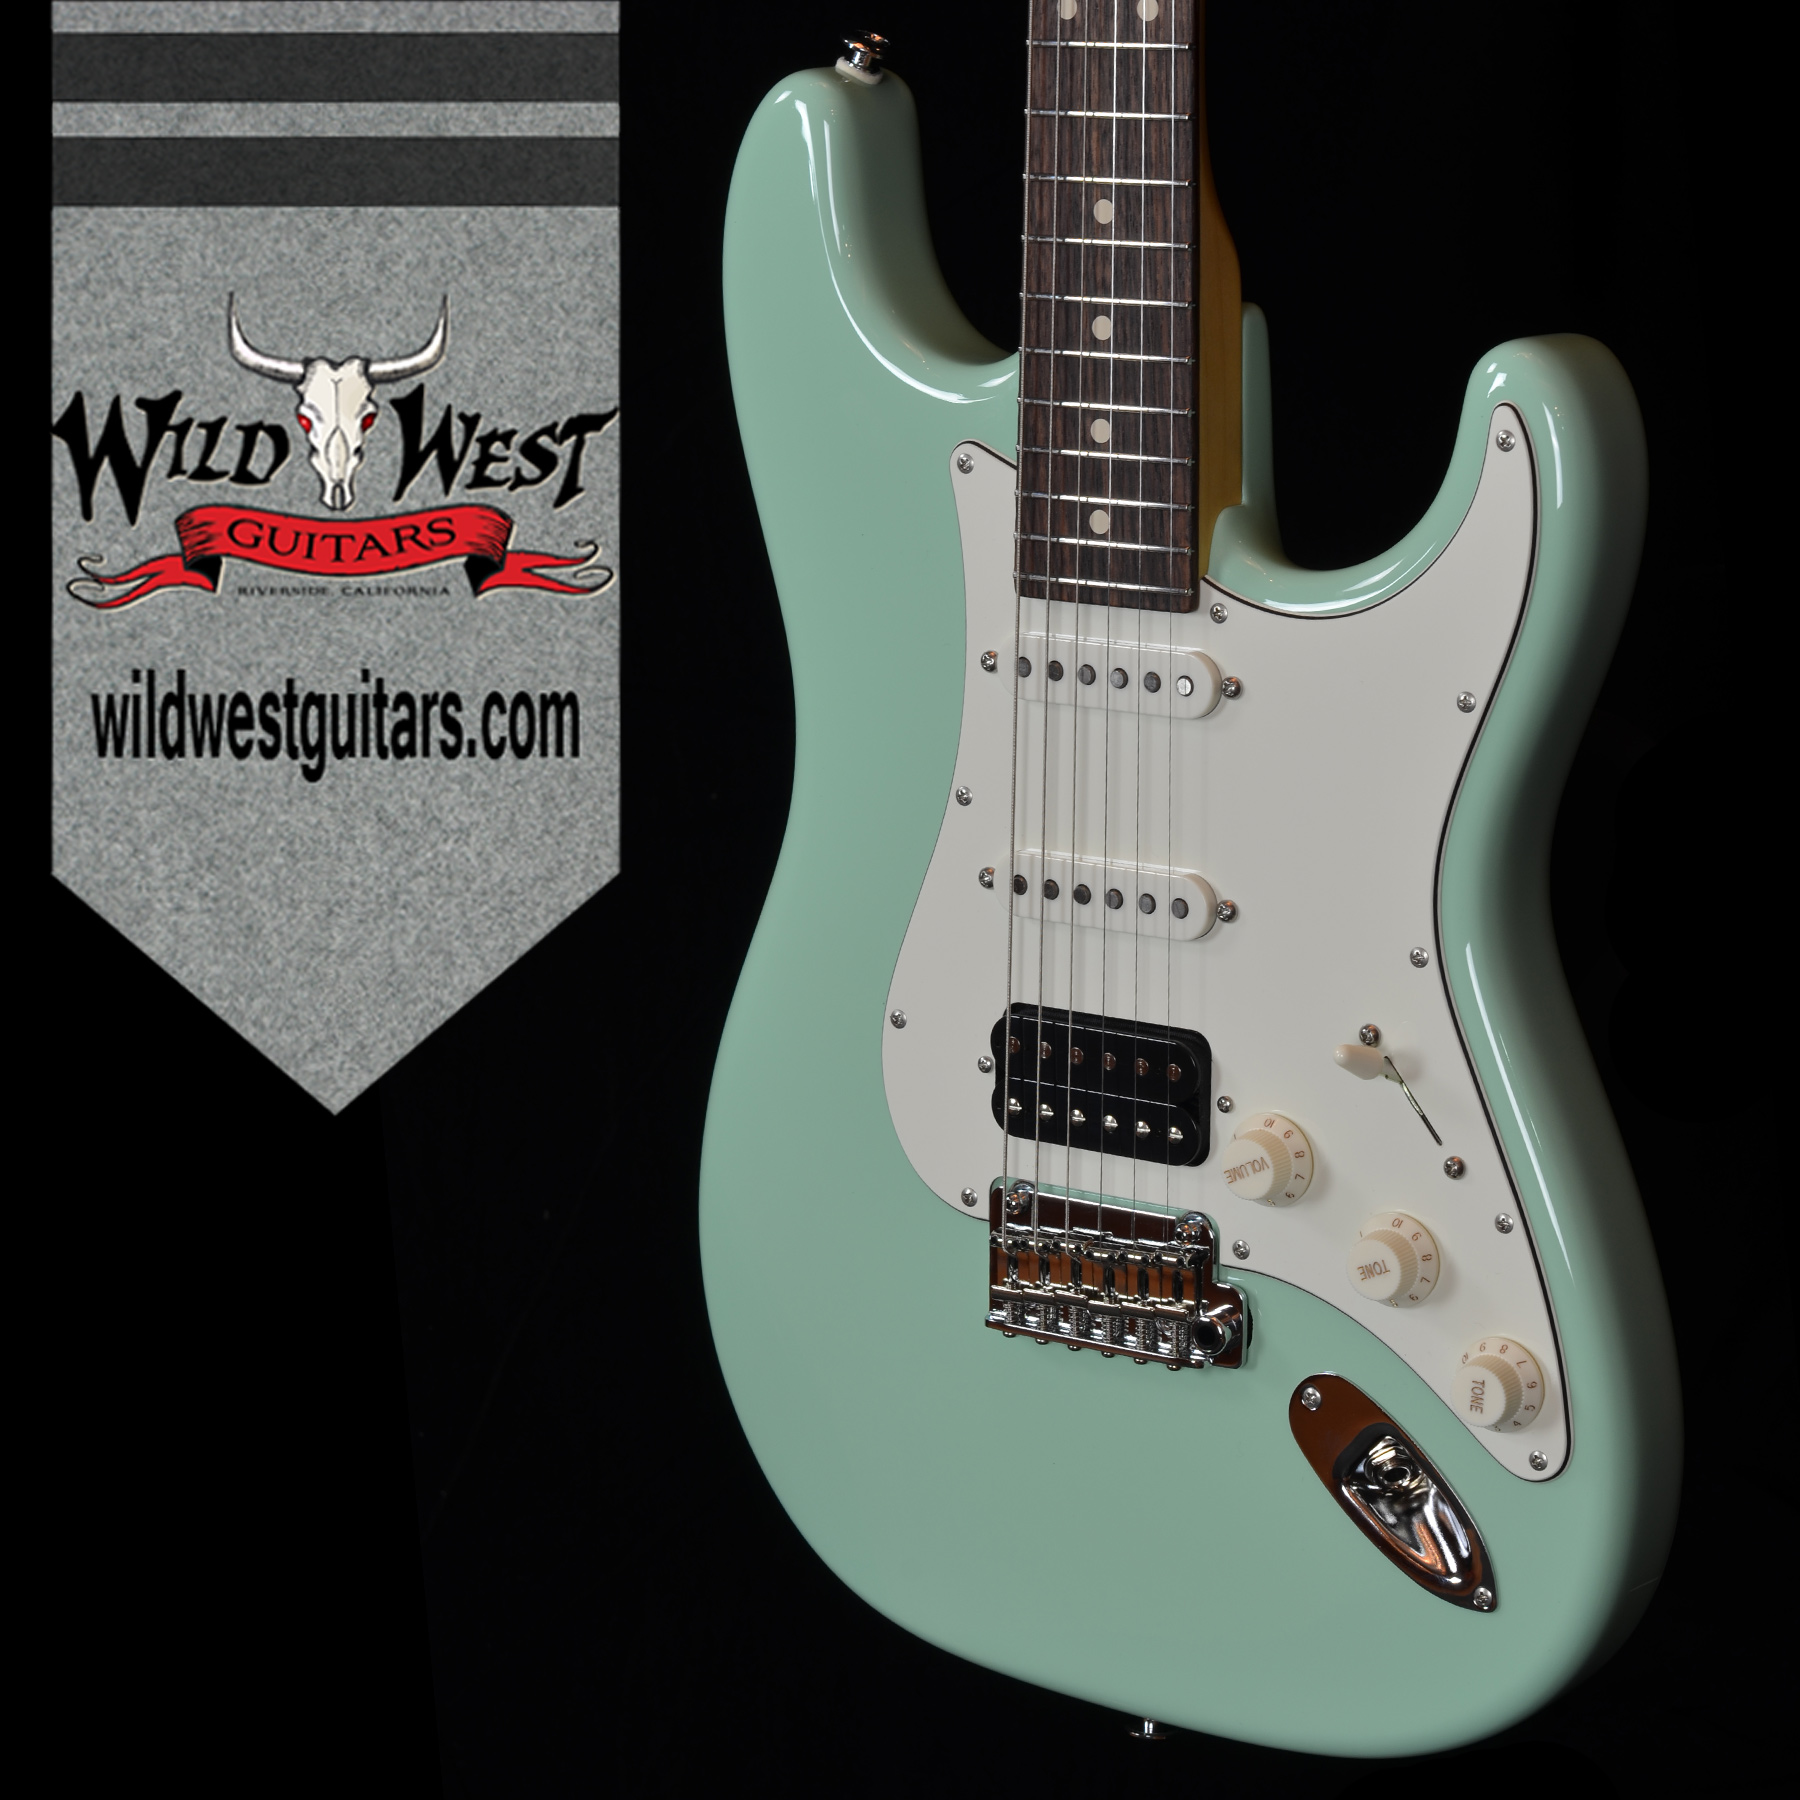 John Suhr Guitar Wiring Example Electrical Diagram 2017 Classic Pro Hss Rosewood Board Surf Green Guitars Company Breedlove